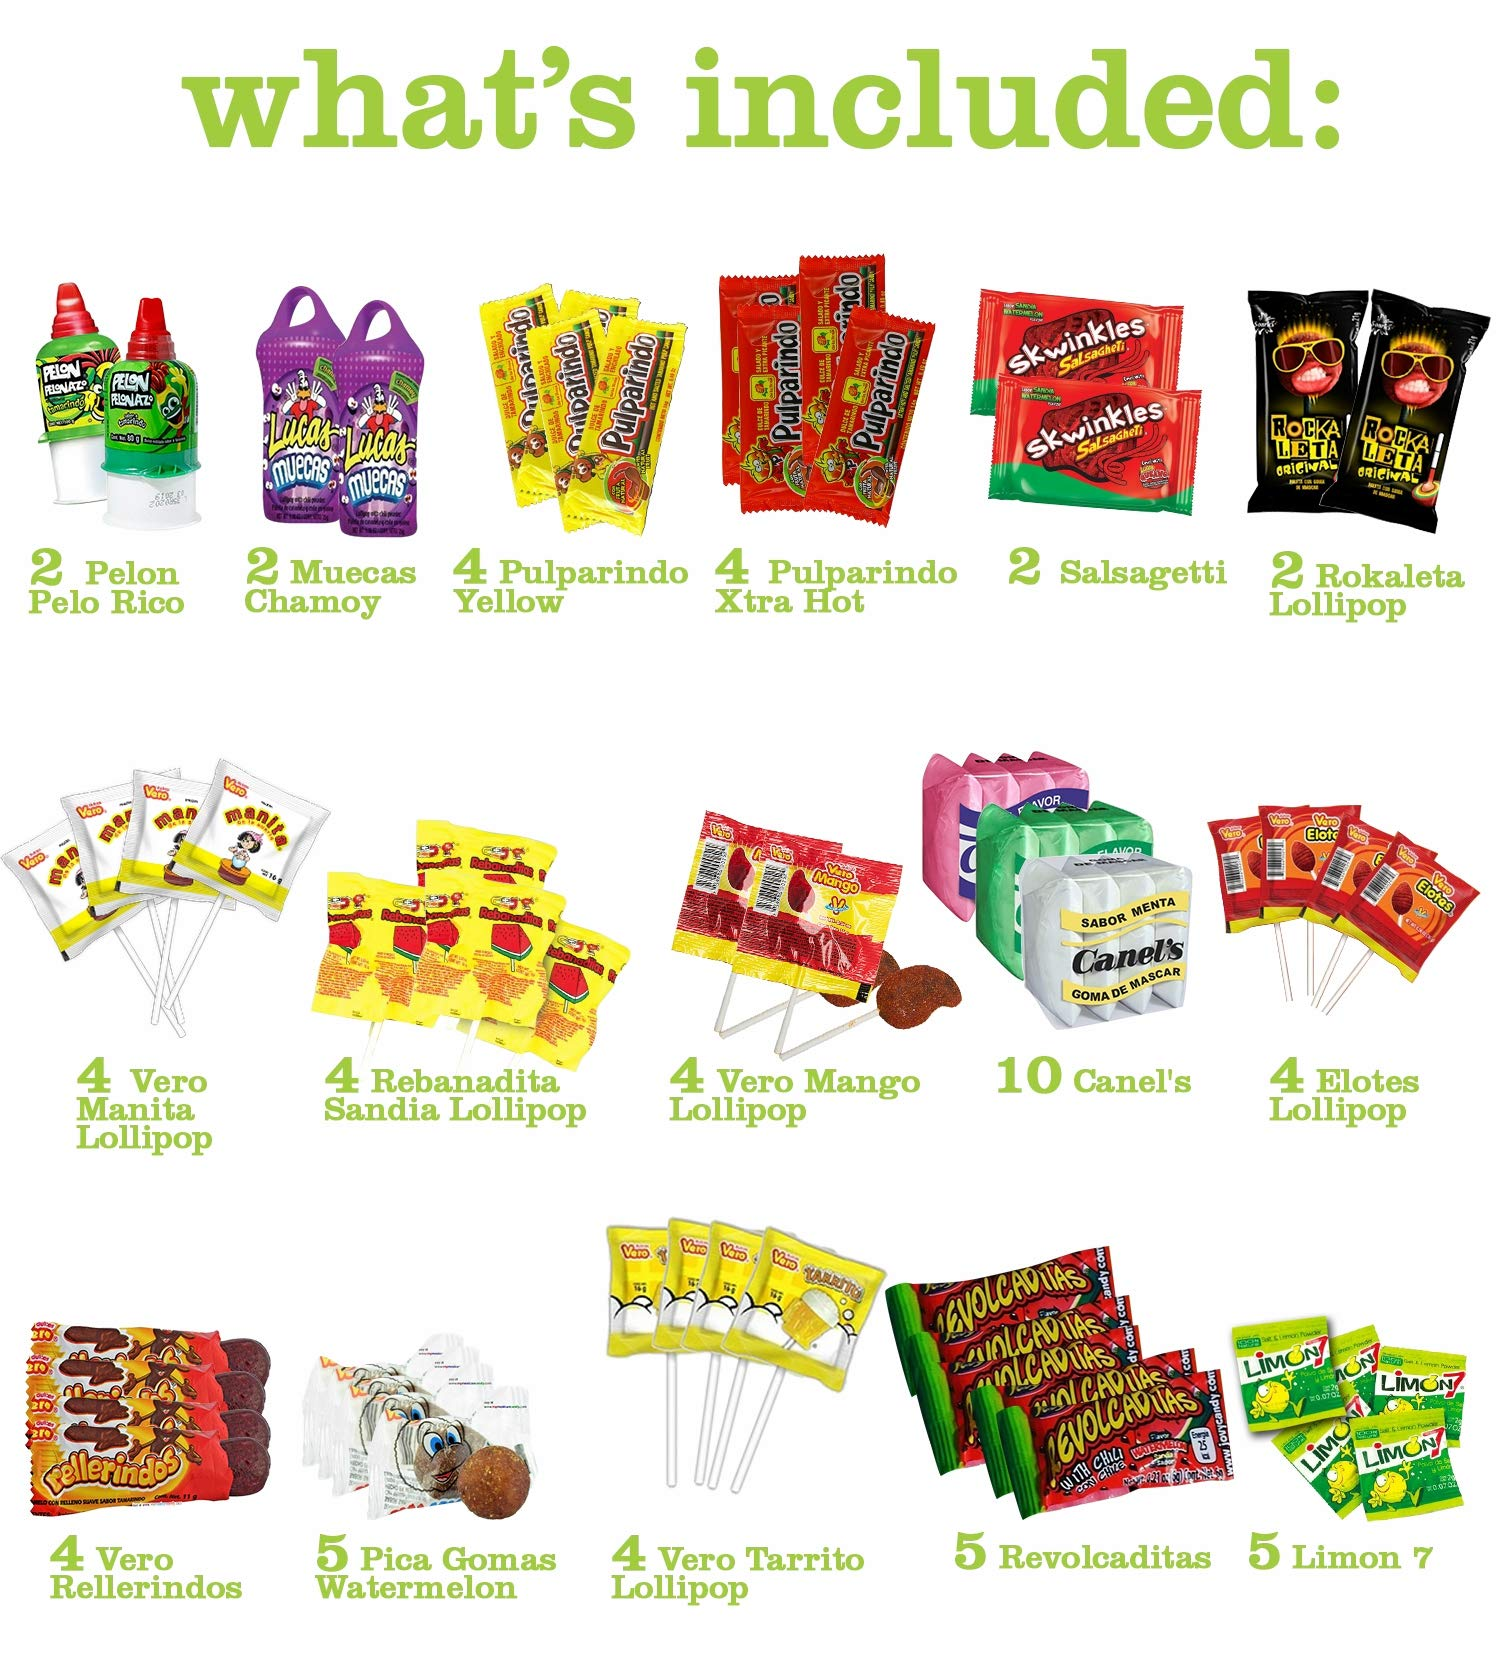 Mexican Candy Assortment Snacks (64 Count), Variety Of Spicy, Sweet, Sour Bulk Candies Dulces Mexicanos, Includes Lucas Candy, Pelon, Vero Lollipop, Pulparindo Makes A Great Gift By MTC. by MTC (Image #2)